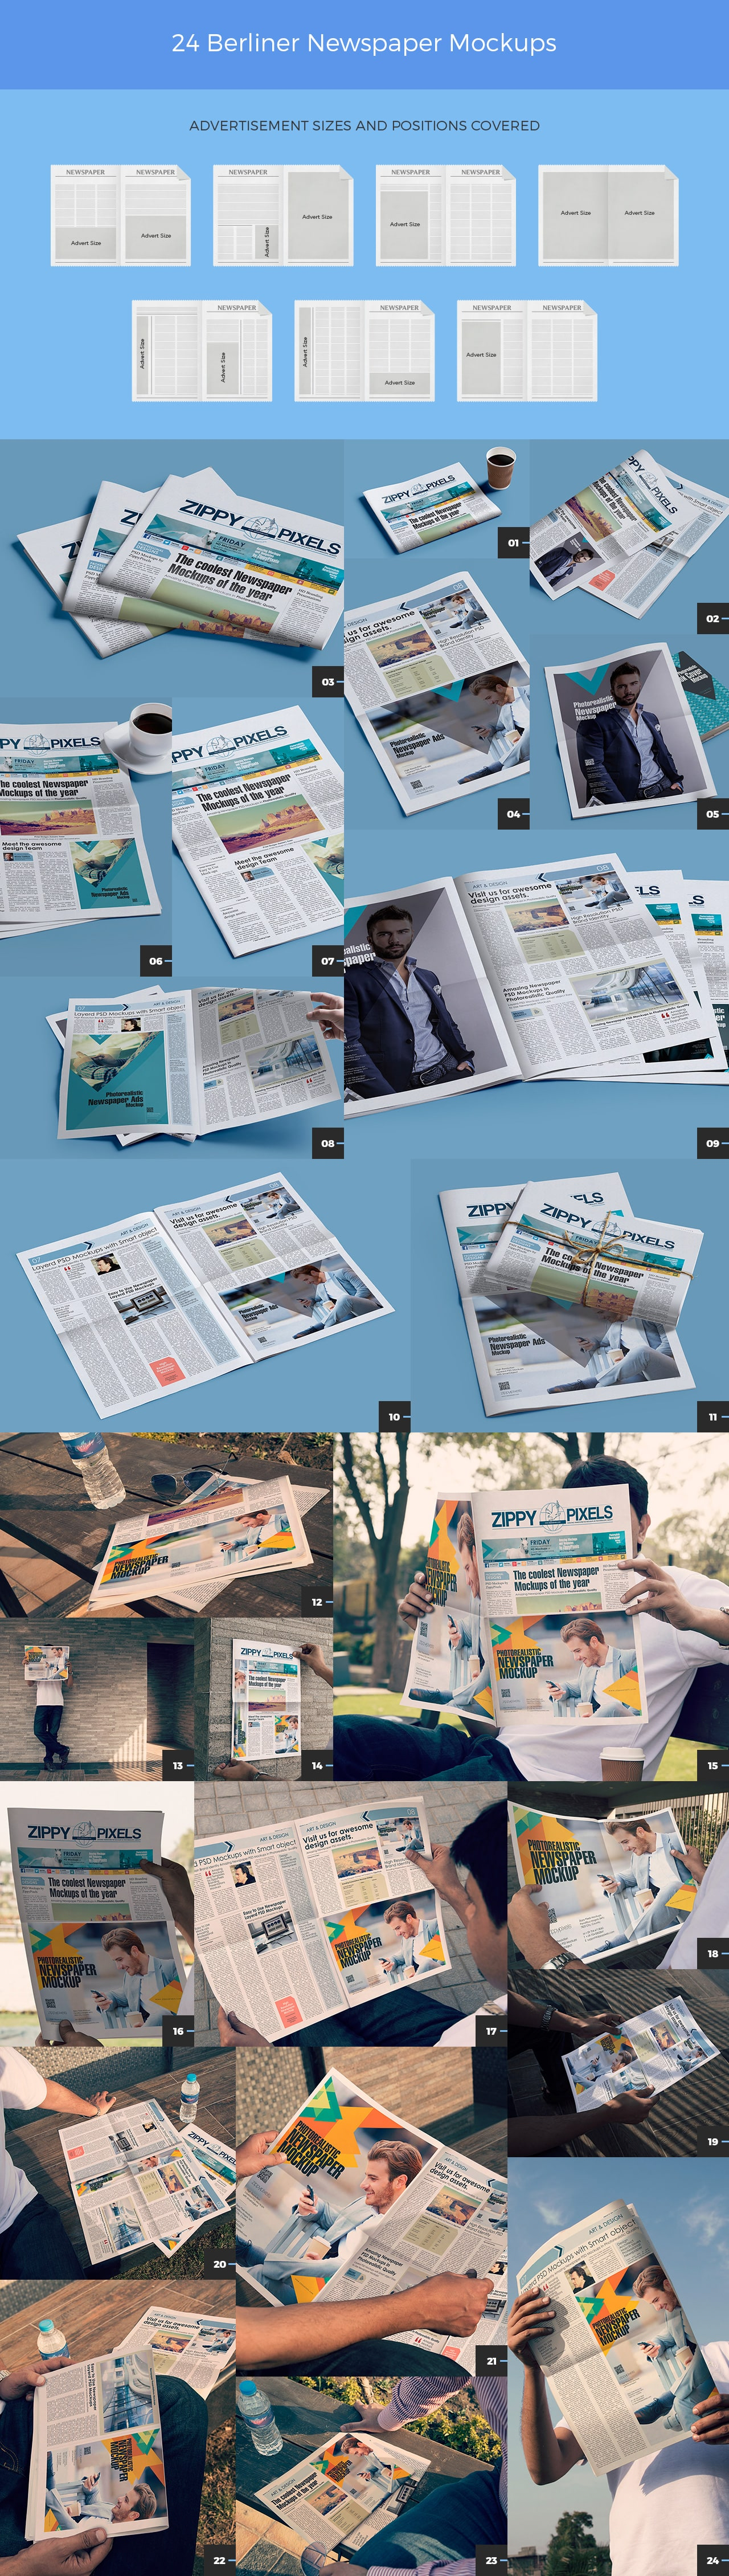 01-berliner-newspaper-advert-mockups-bundle